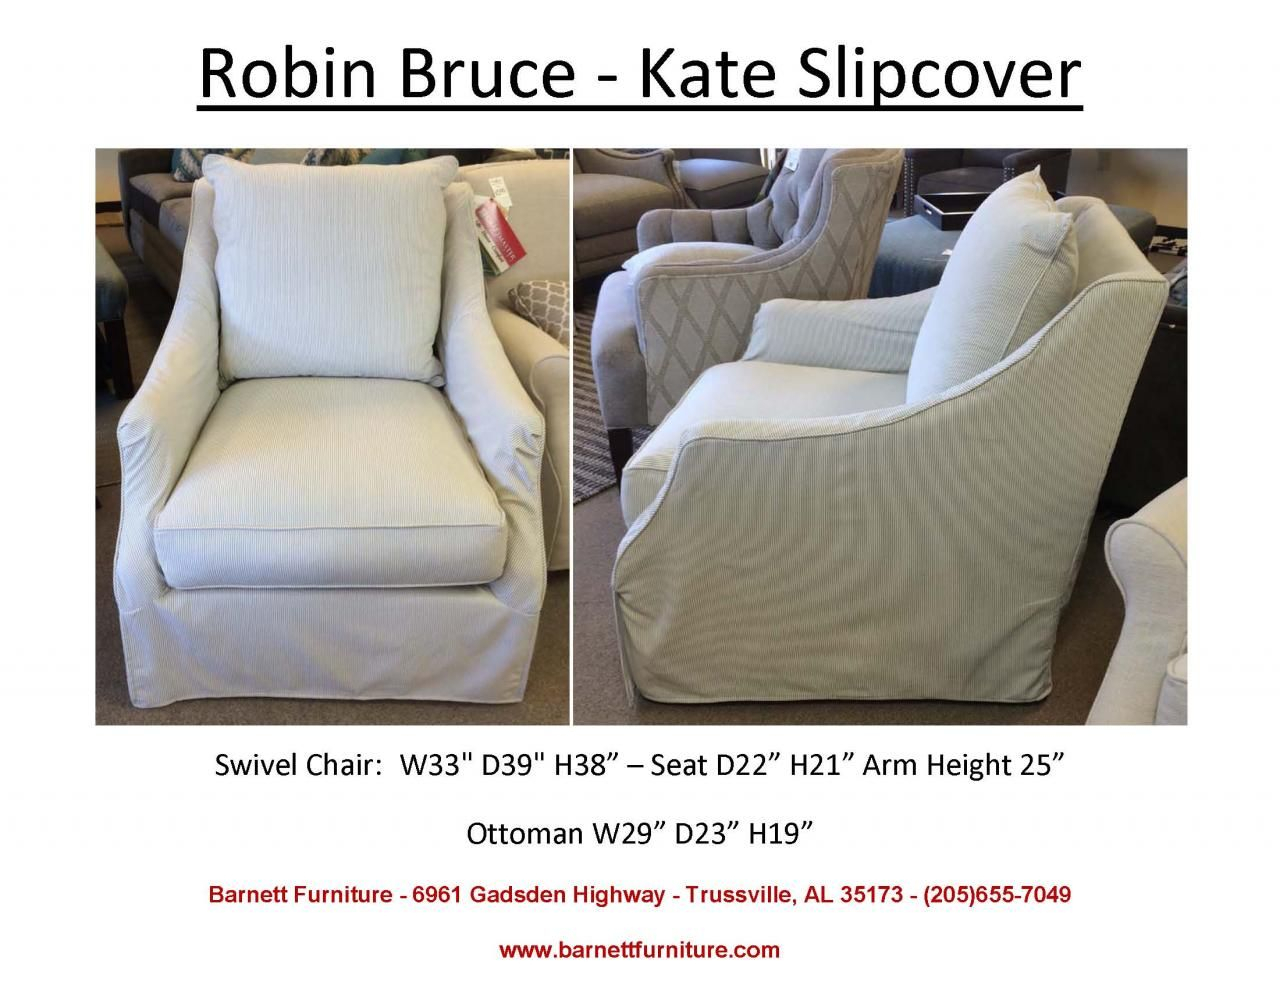 Robin Bruce Kate Slipcover Swivel Chair (Image 17 of 20)